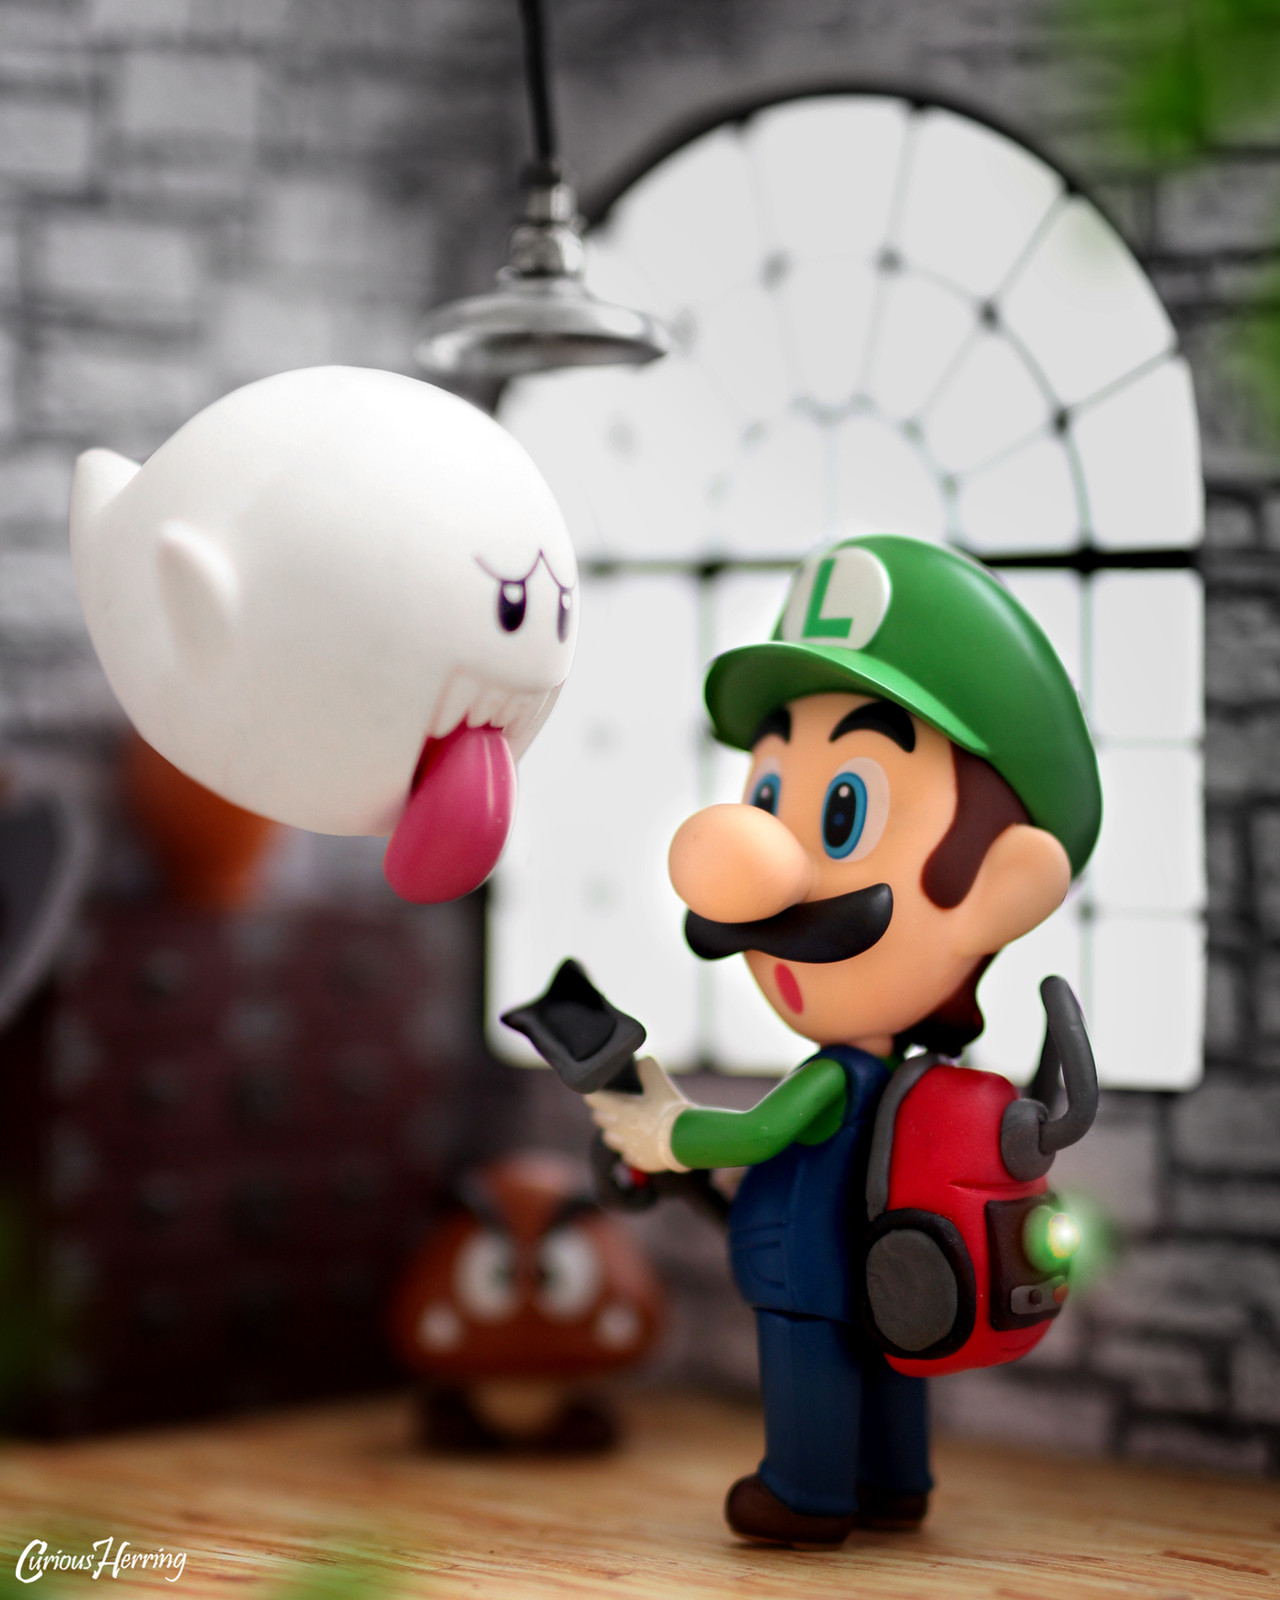 Super Mario Toy Photography Curious Herring